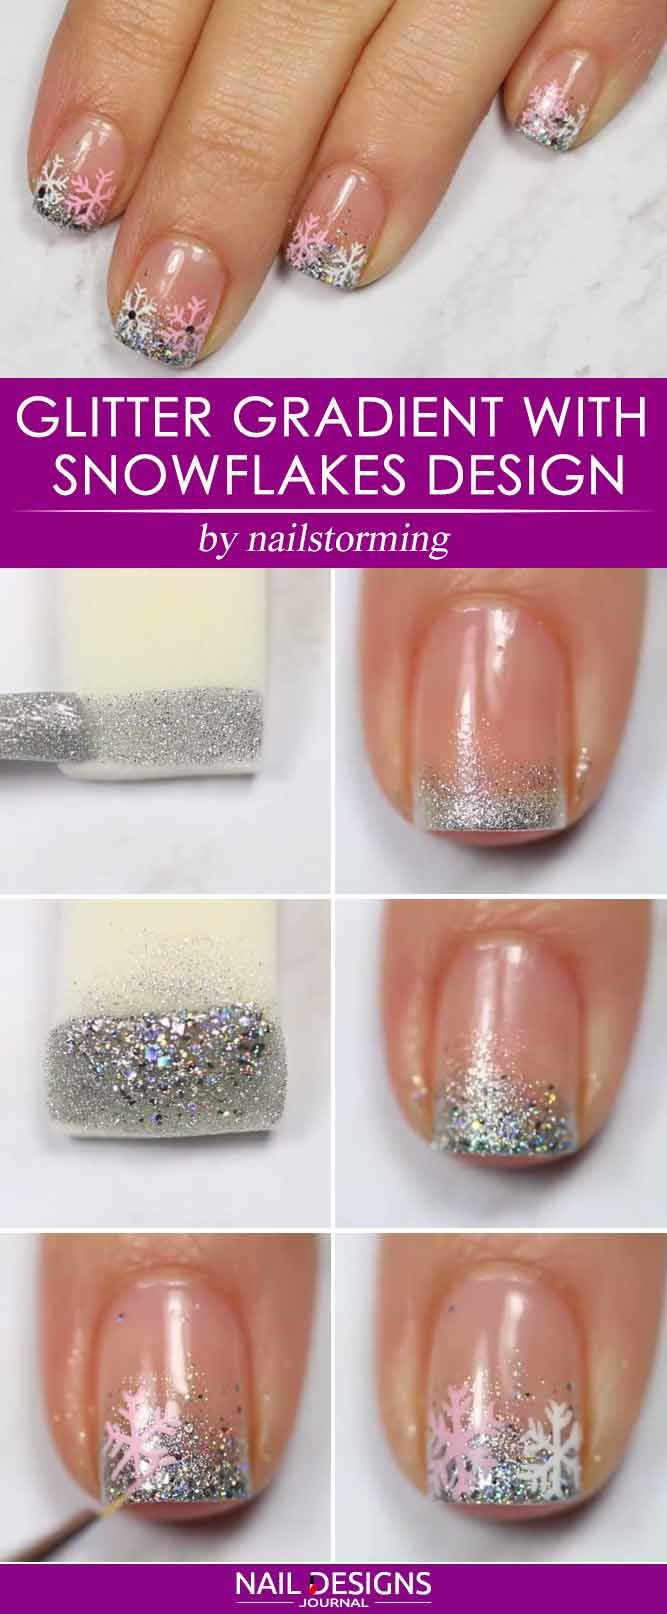 Glitter Gradient With Snowflakes Design